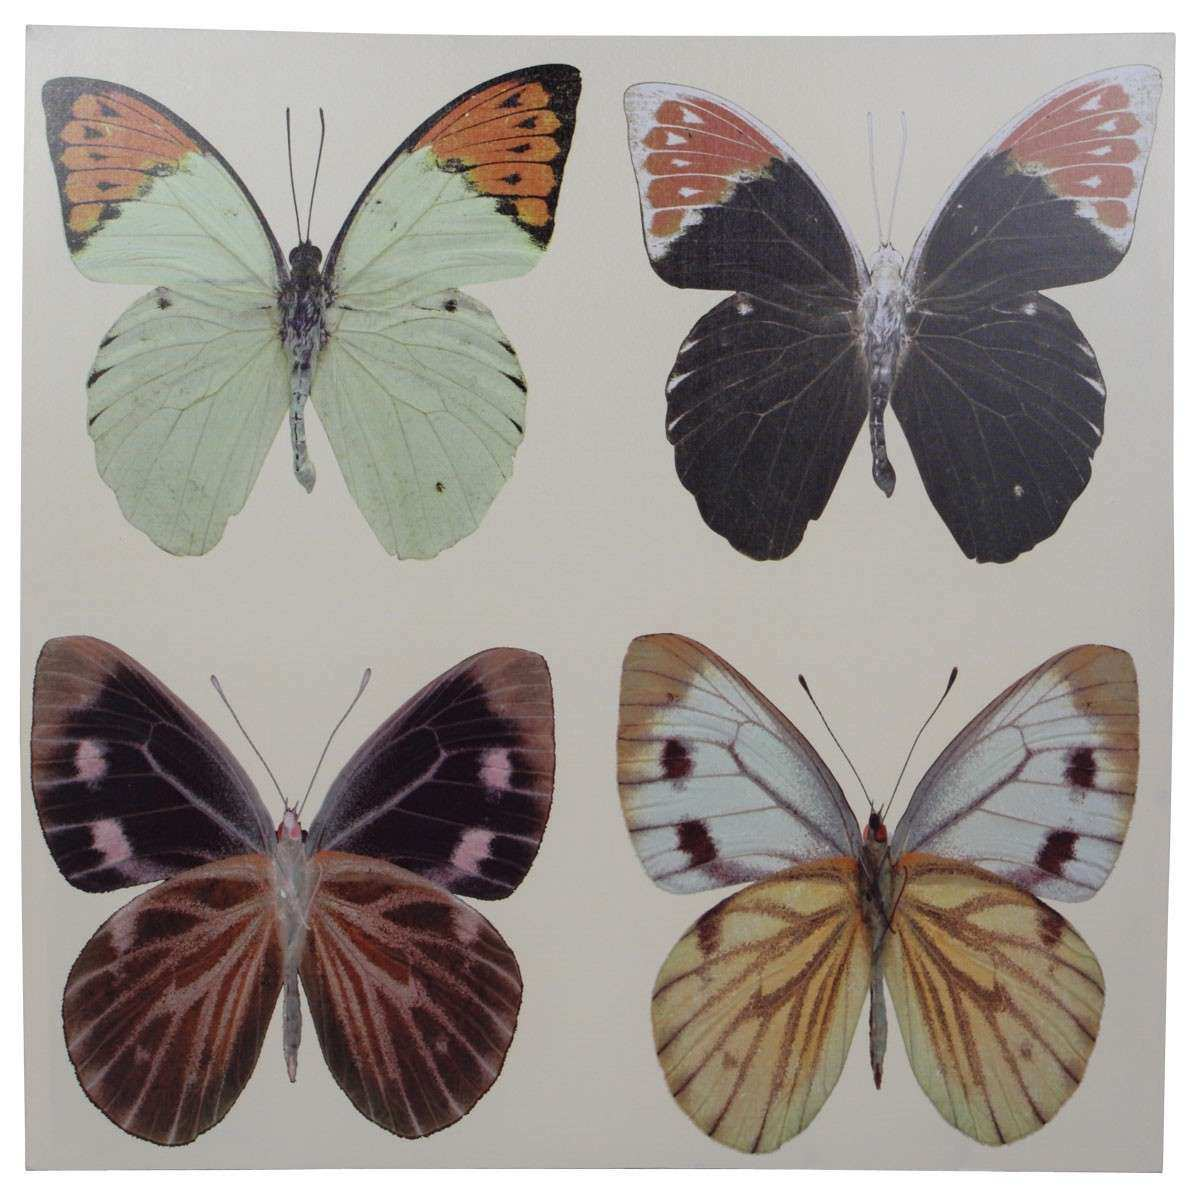 Butterfly Printed Wall Art Canvas